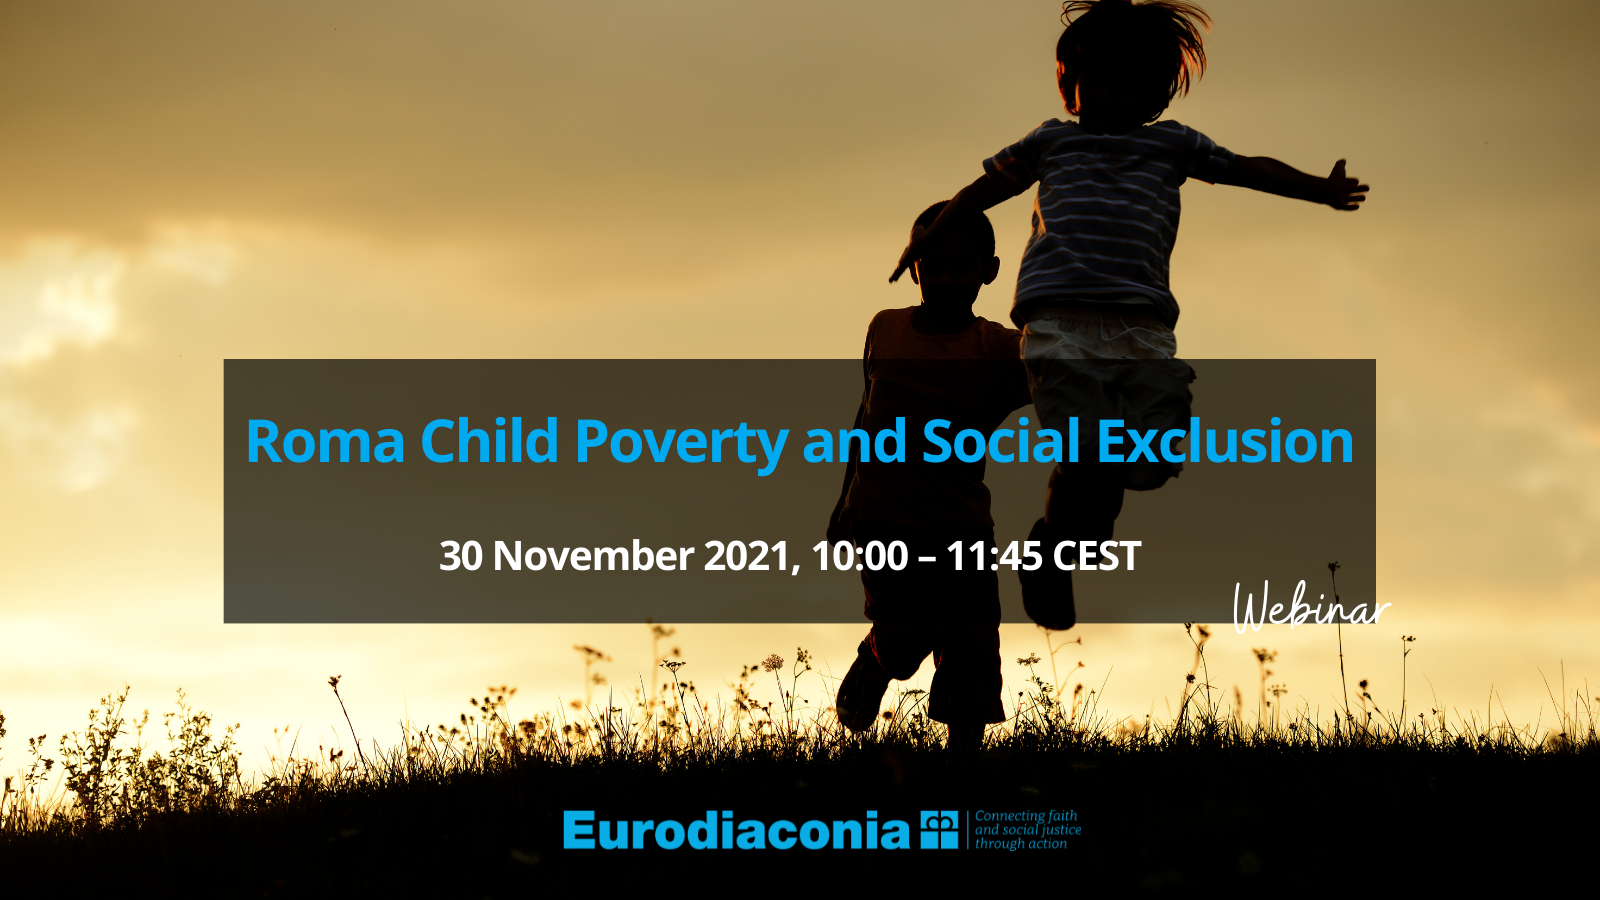 WEBINAR - Roma Child Poverty and Social Exclusion